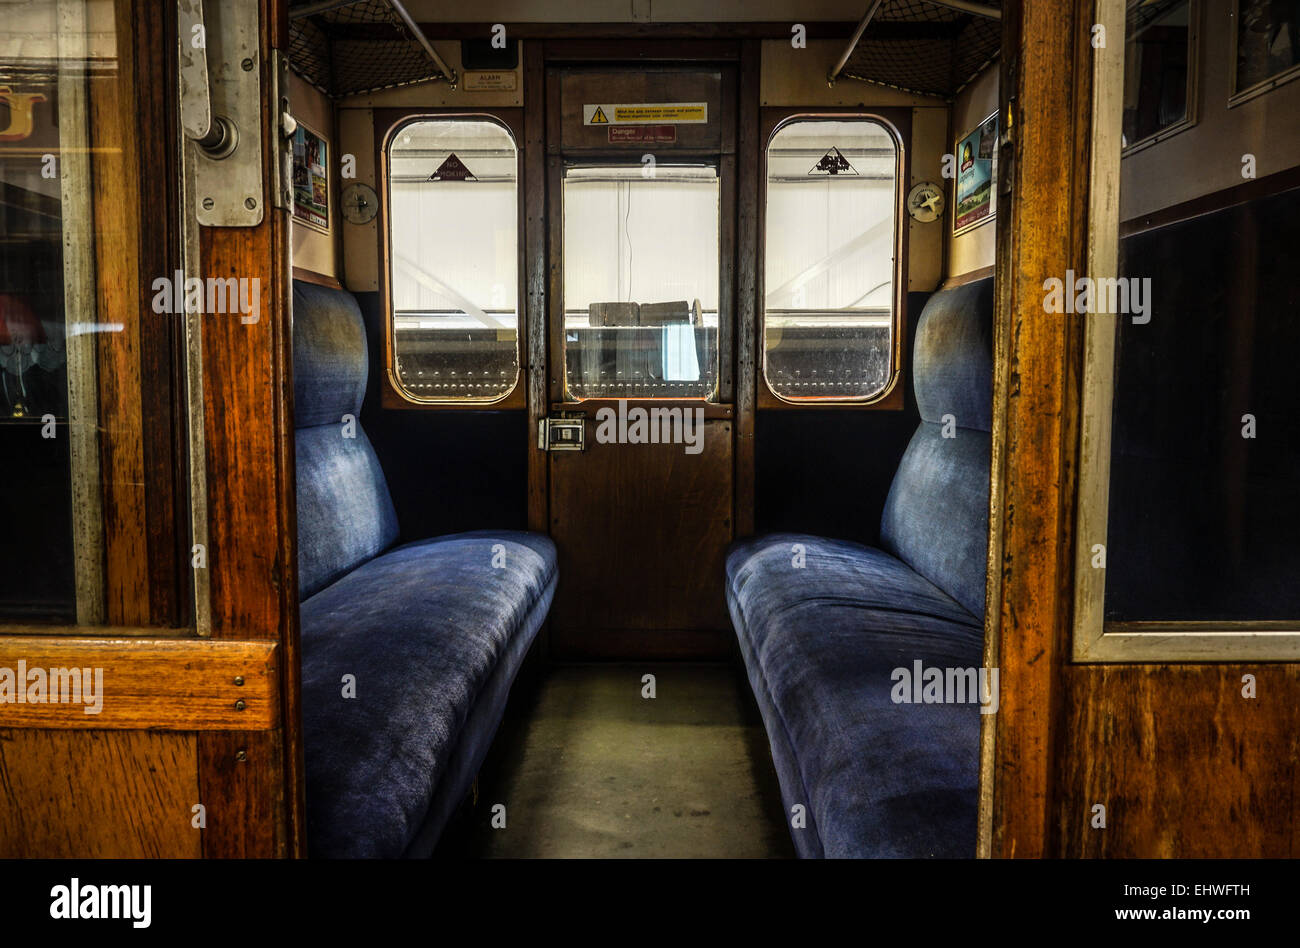 interior view of a compartment inside an old british railway stock photo 79851873 alamy. Black Bedroom Furniture Sets. Home Design Ideas